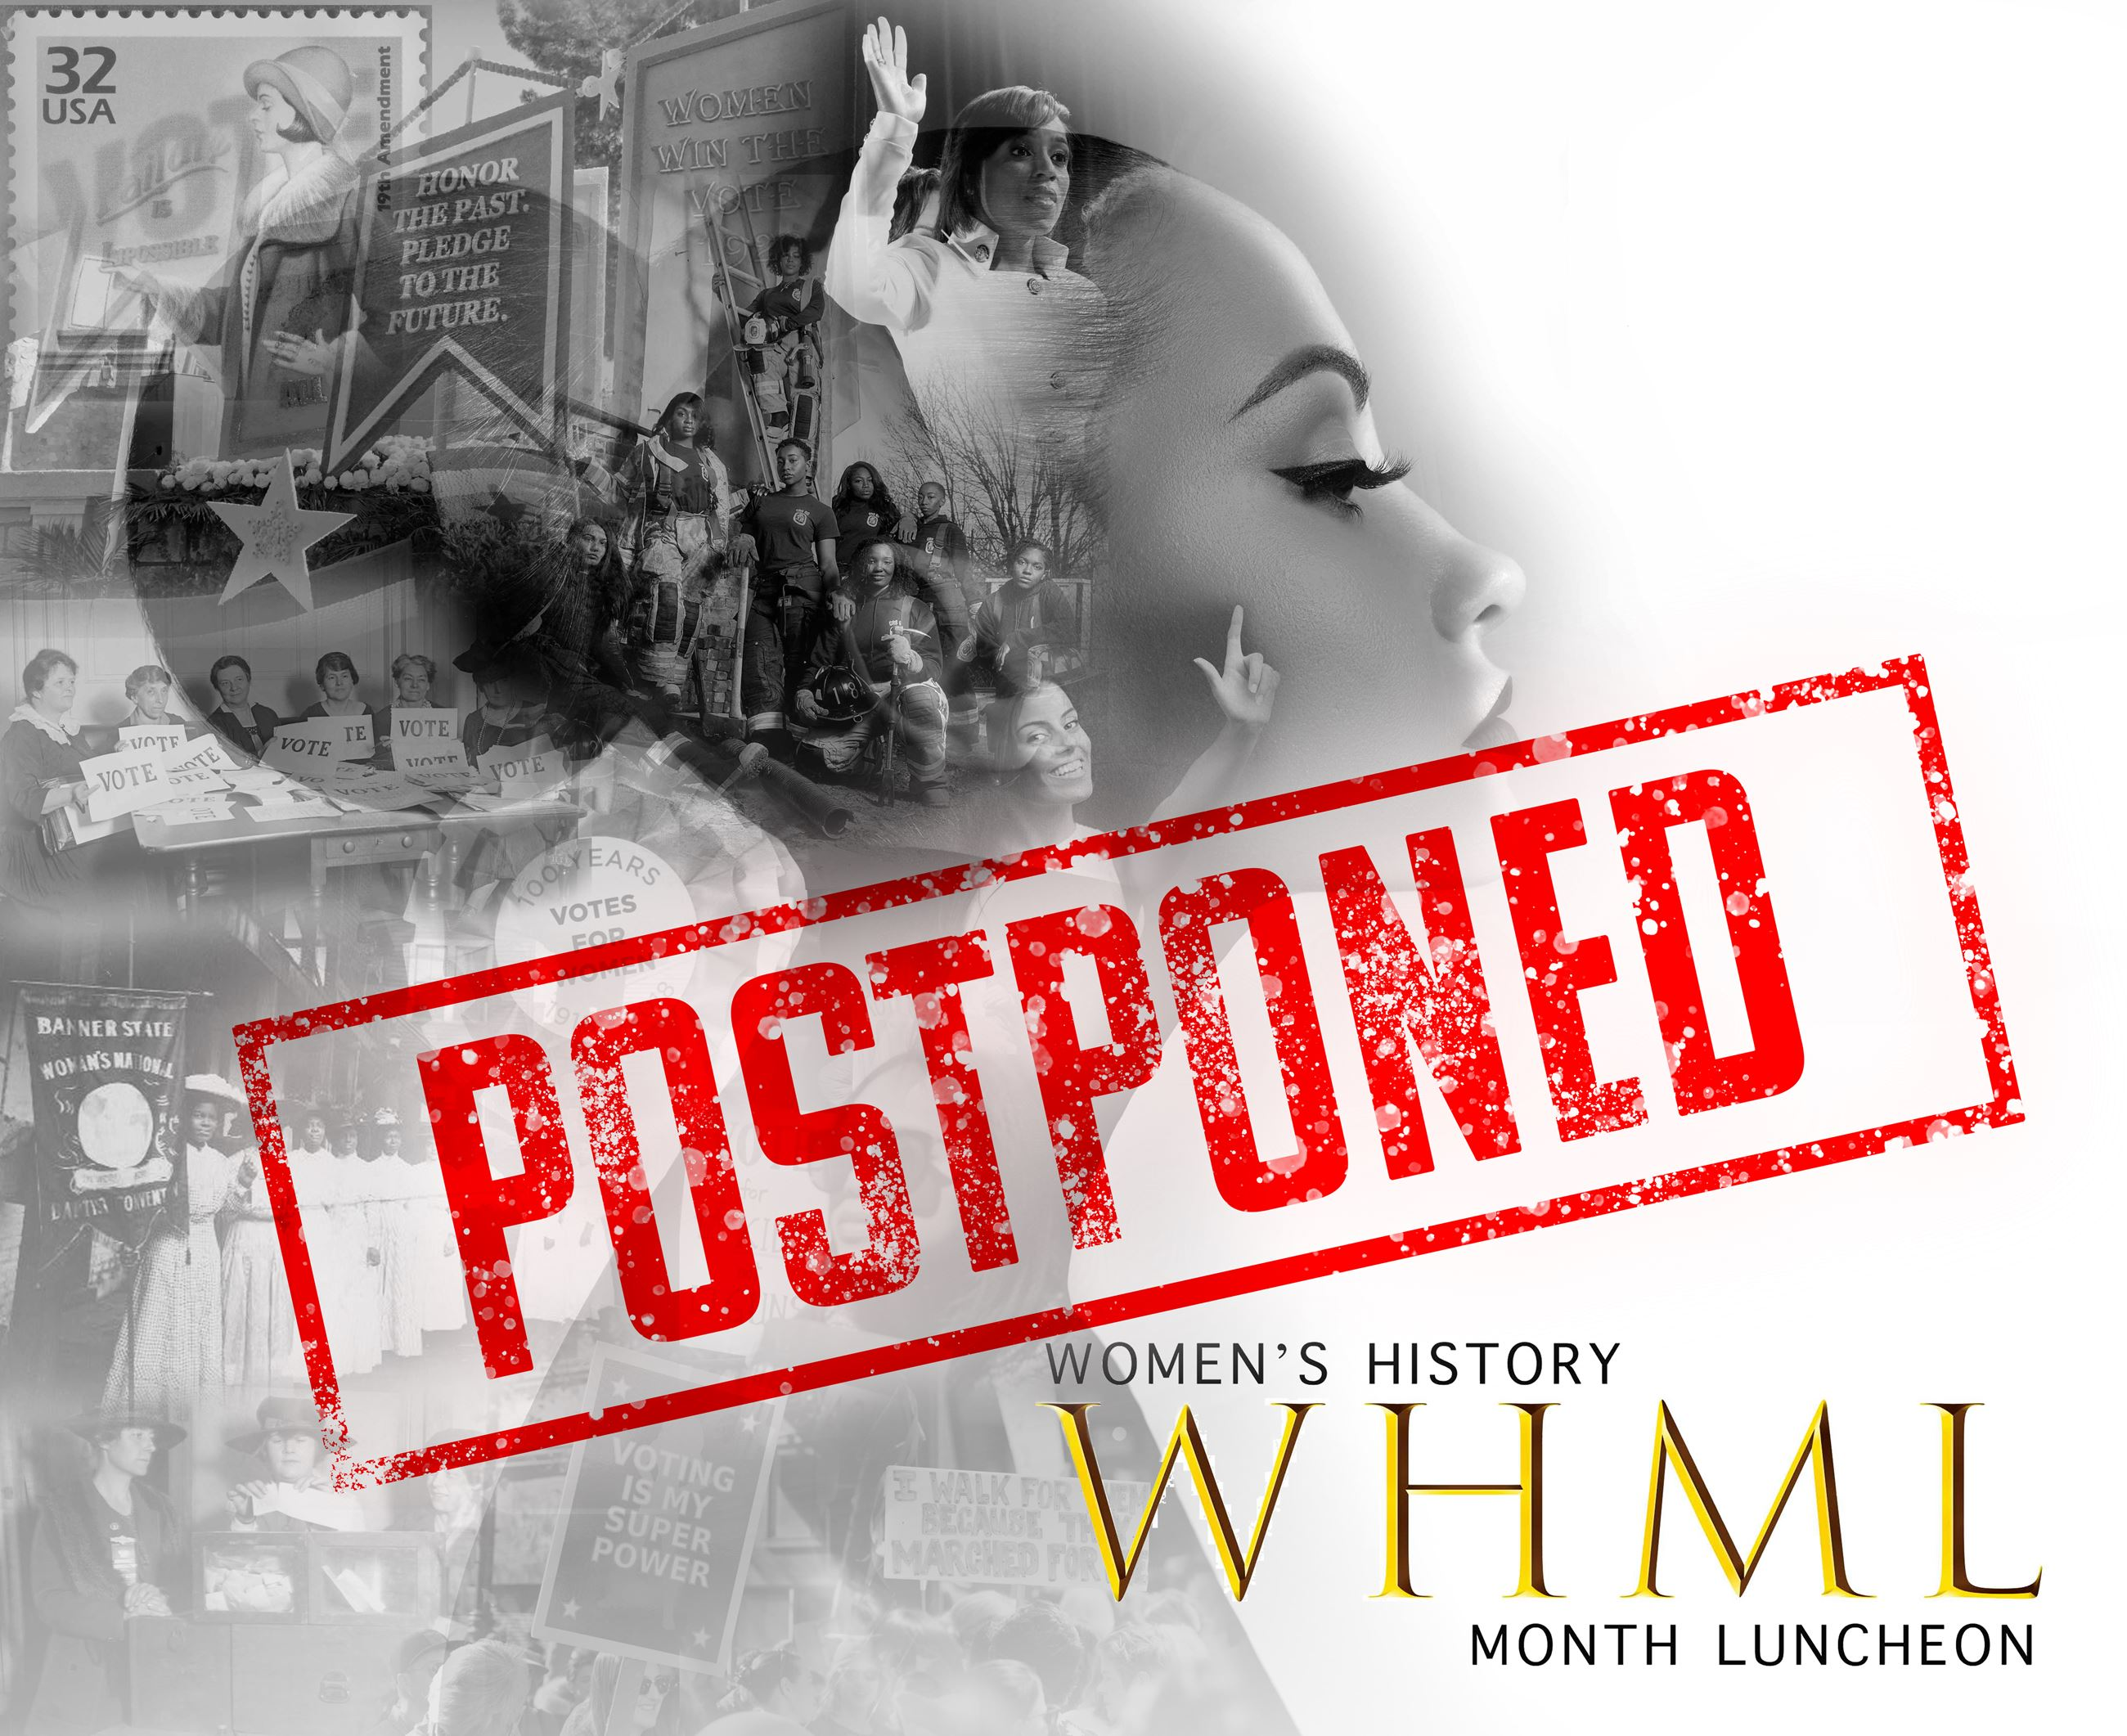 Women's History Month Luncheon Postponed